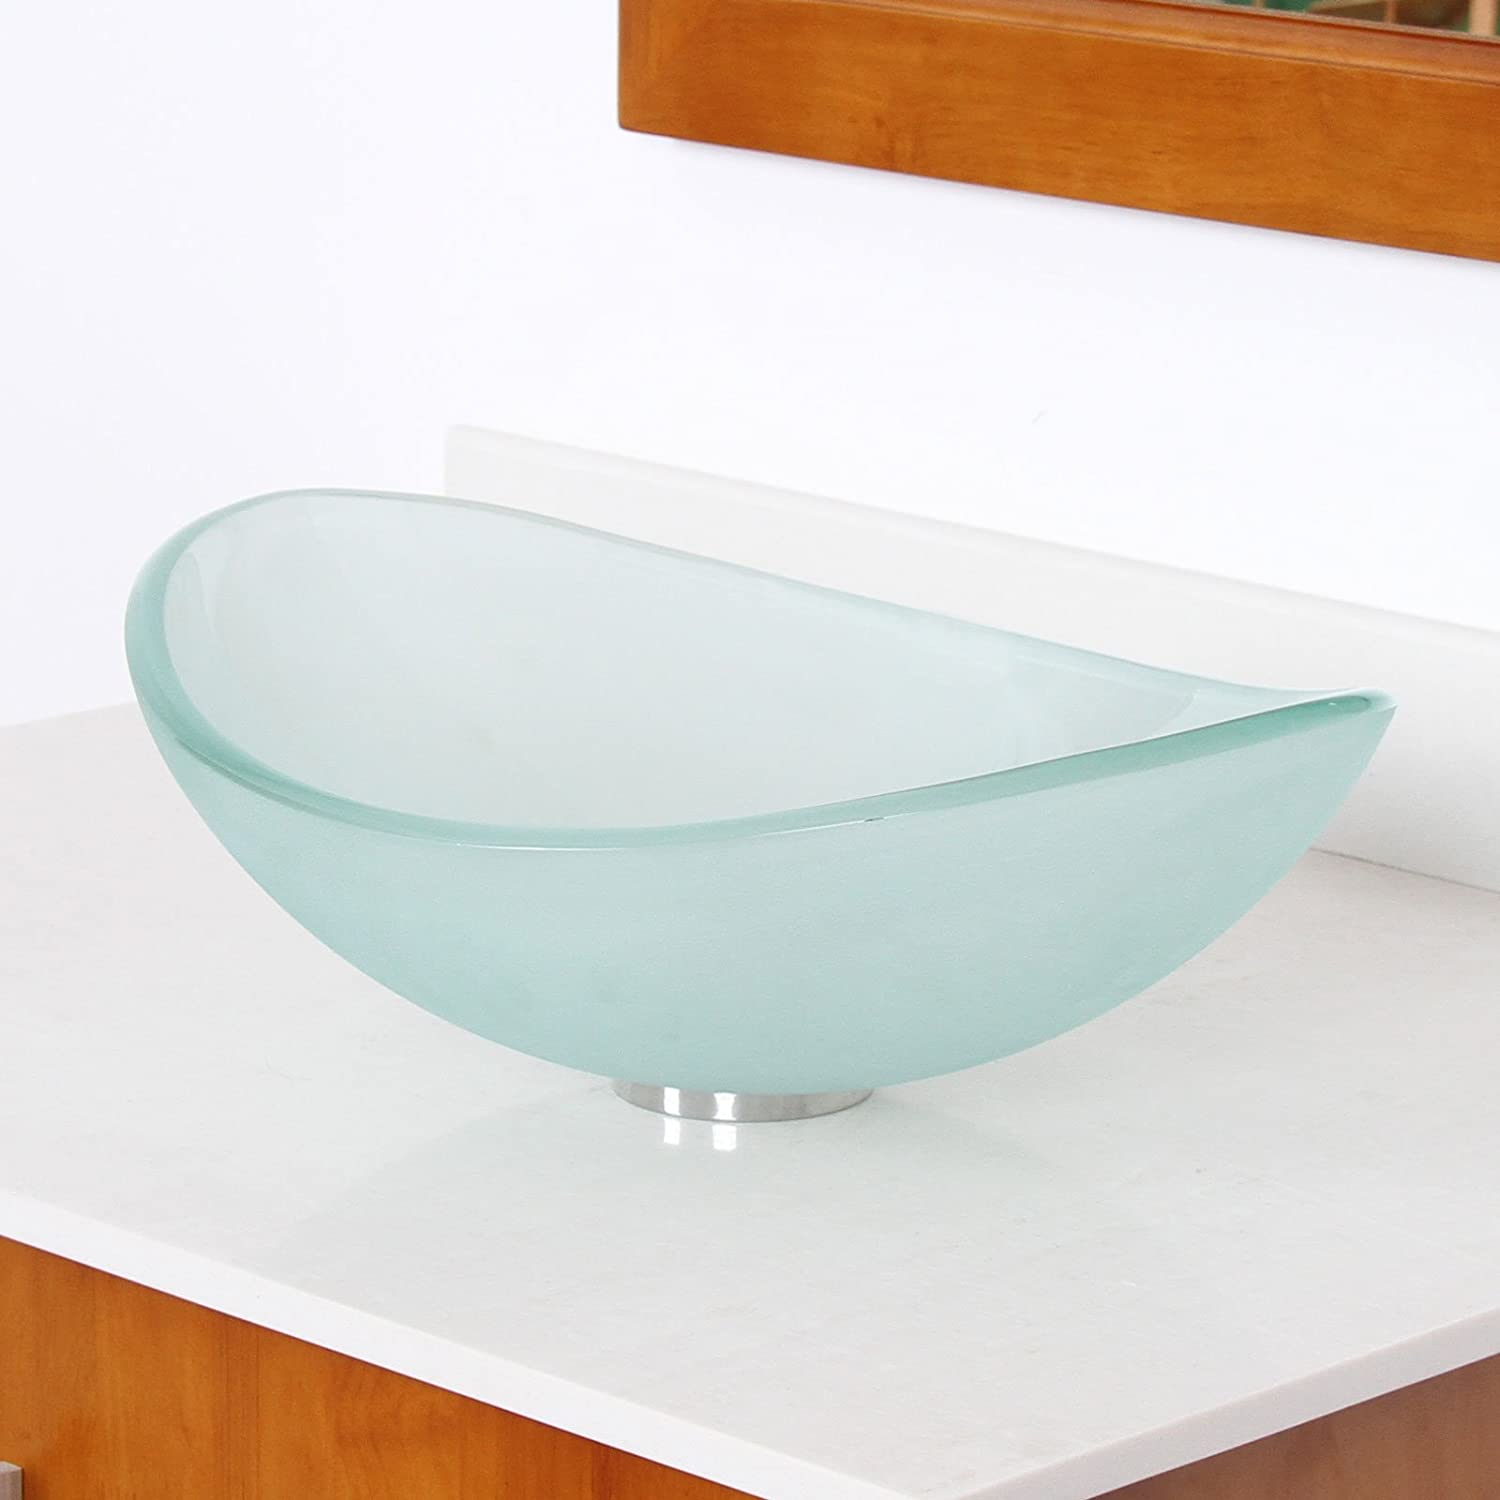 Mini Tempered Glass Boat Shaped Oval Bowl Bottom Vessel Bathroom Sink Sink  Finish: Frosted     Amazon.com